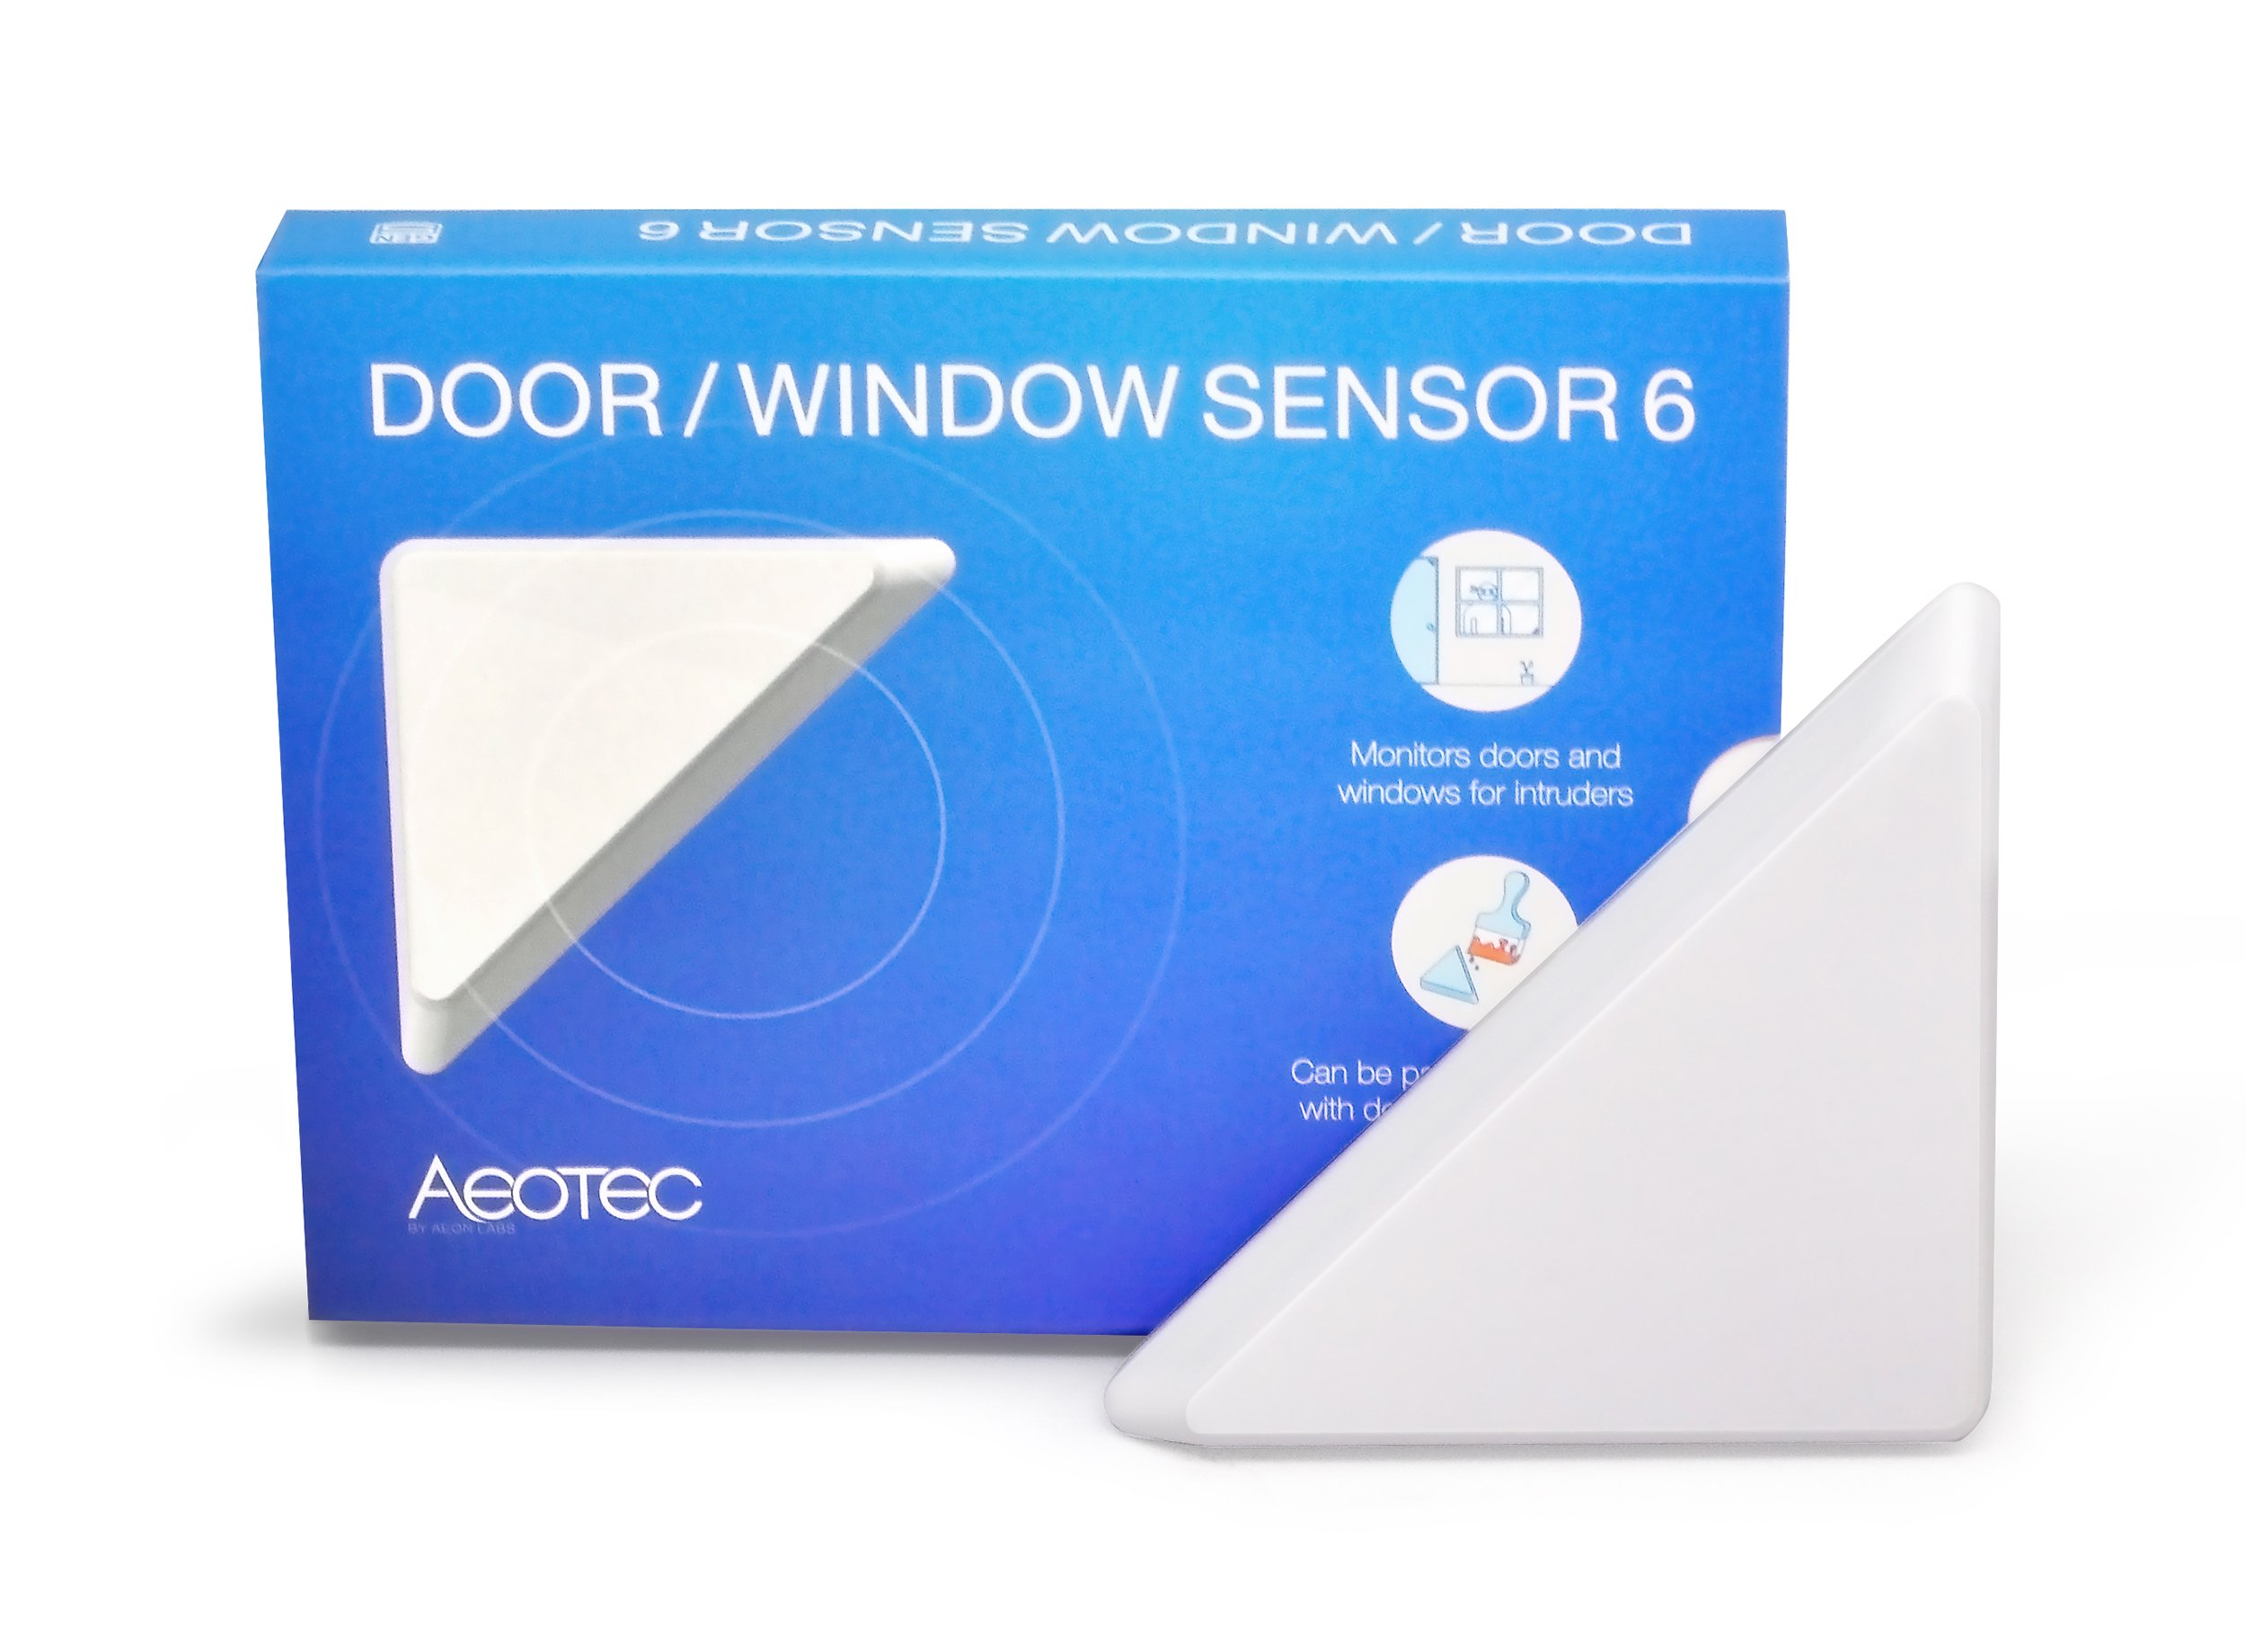 Aeotec Door ​/ ​Window Sensor 6 with Rechargeable Battery, Z-Wave Plus ON/OFF Magnetic Detector for Home Security Protection​ & Automation​, Burglar Alert, Paintable Design